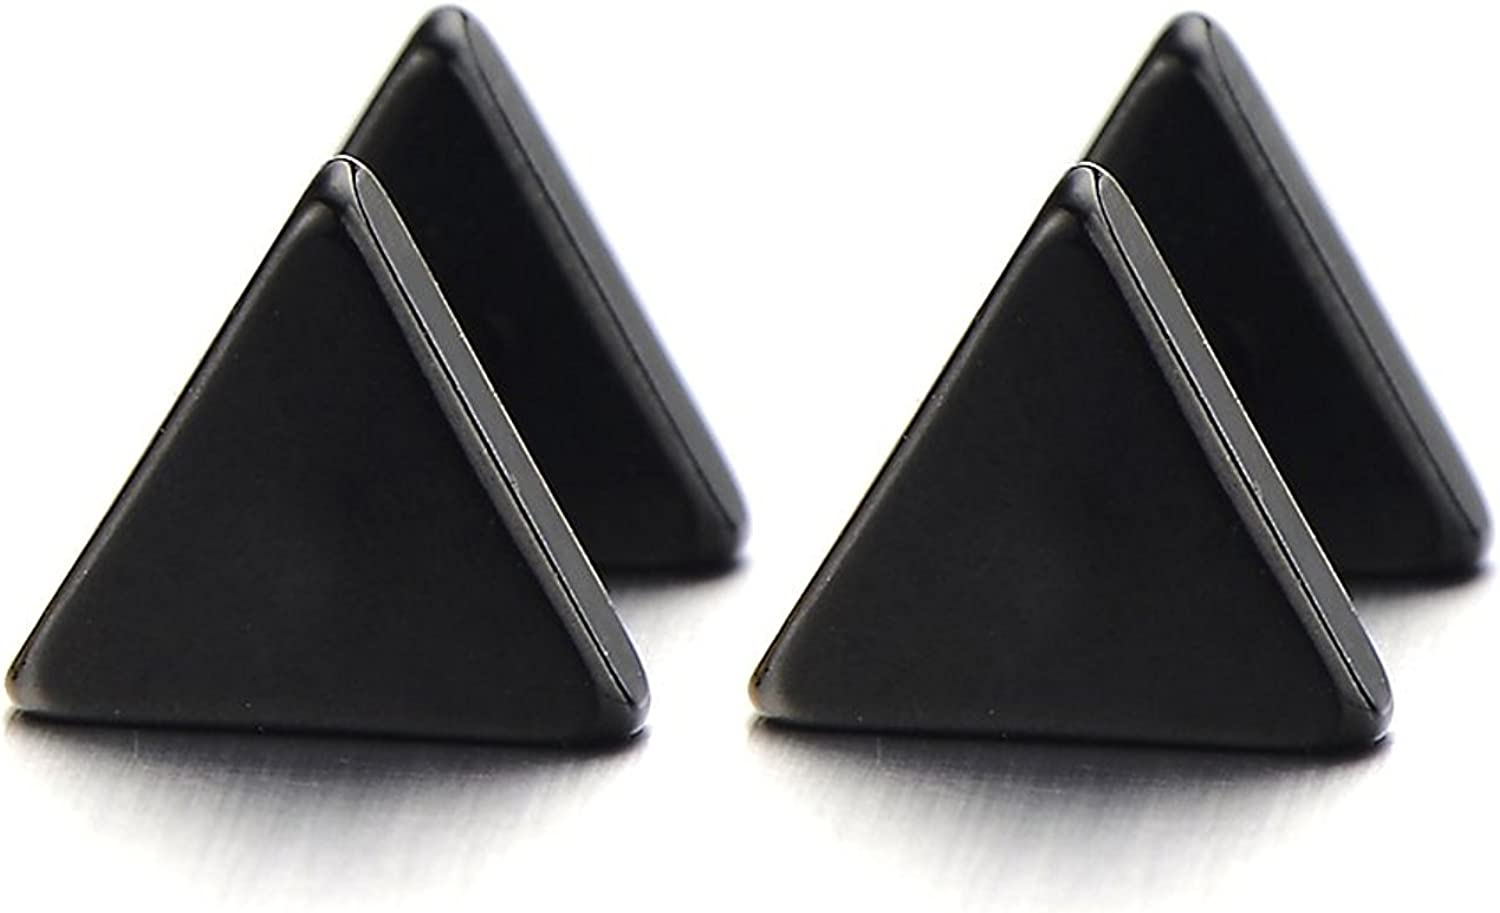 2pcs 5-10MM Unisex Stainless Steel Black Triangle Screw Stud Earrings for Man and Women CA